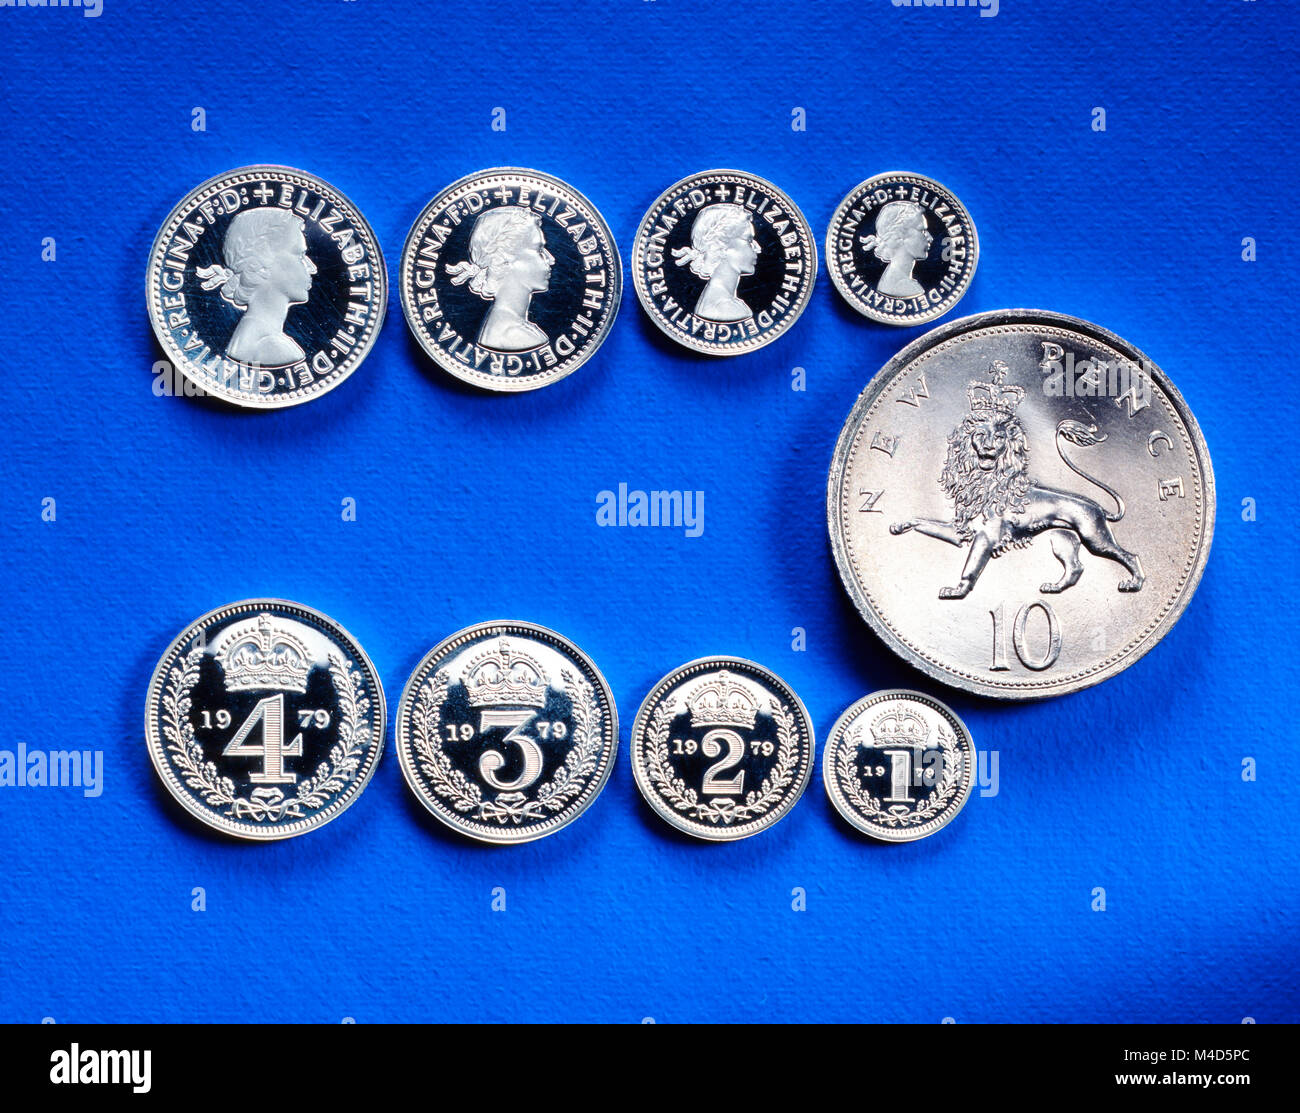 Maundy coins, accompanied by a regular ten pence coin to show scale. The small sterling silver coins are givenn - Stock Image